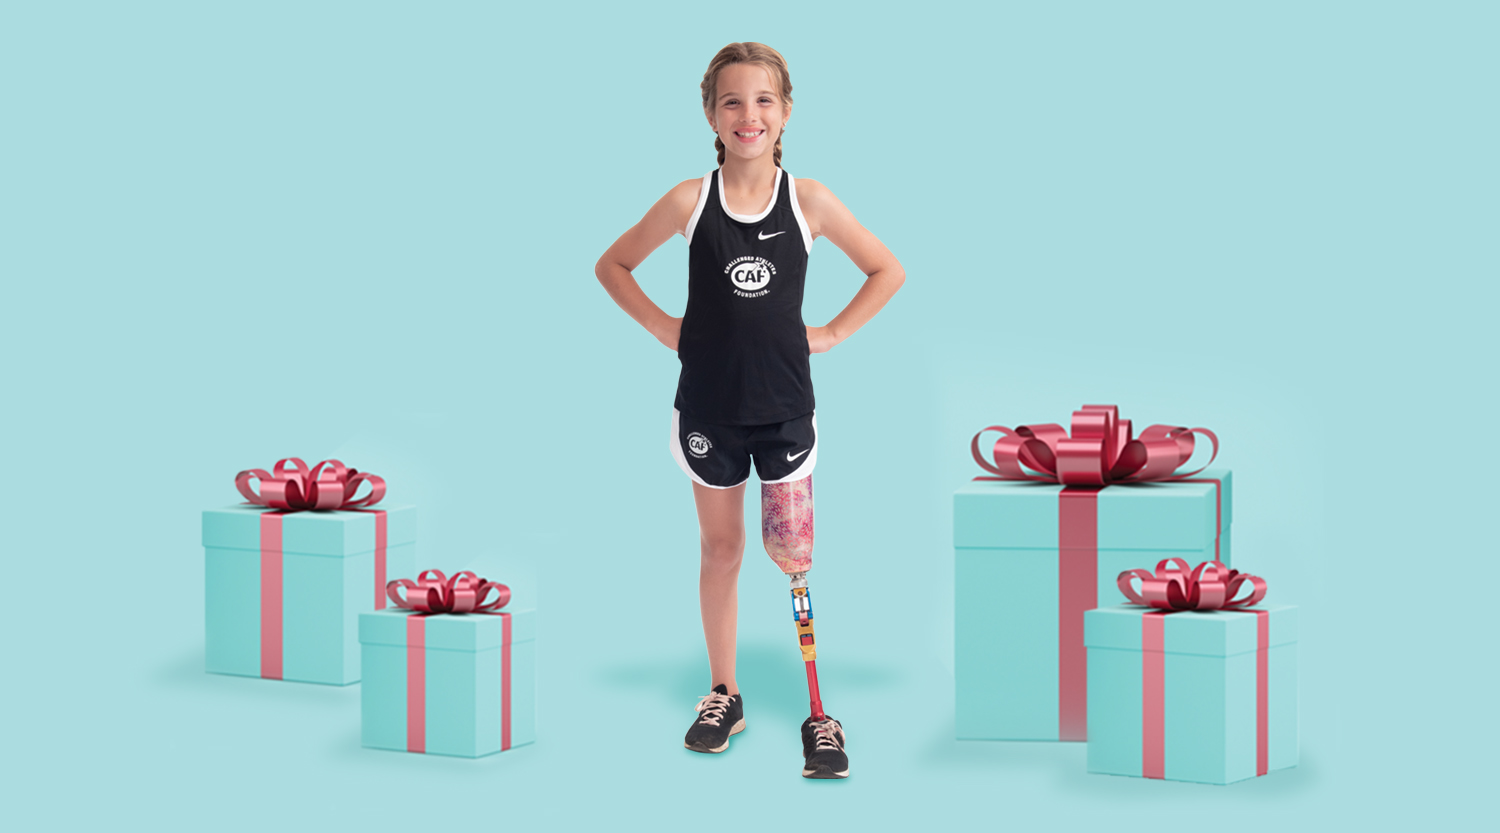 Cami Wood for CAF 2019 Holiday Campaign